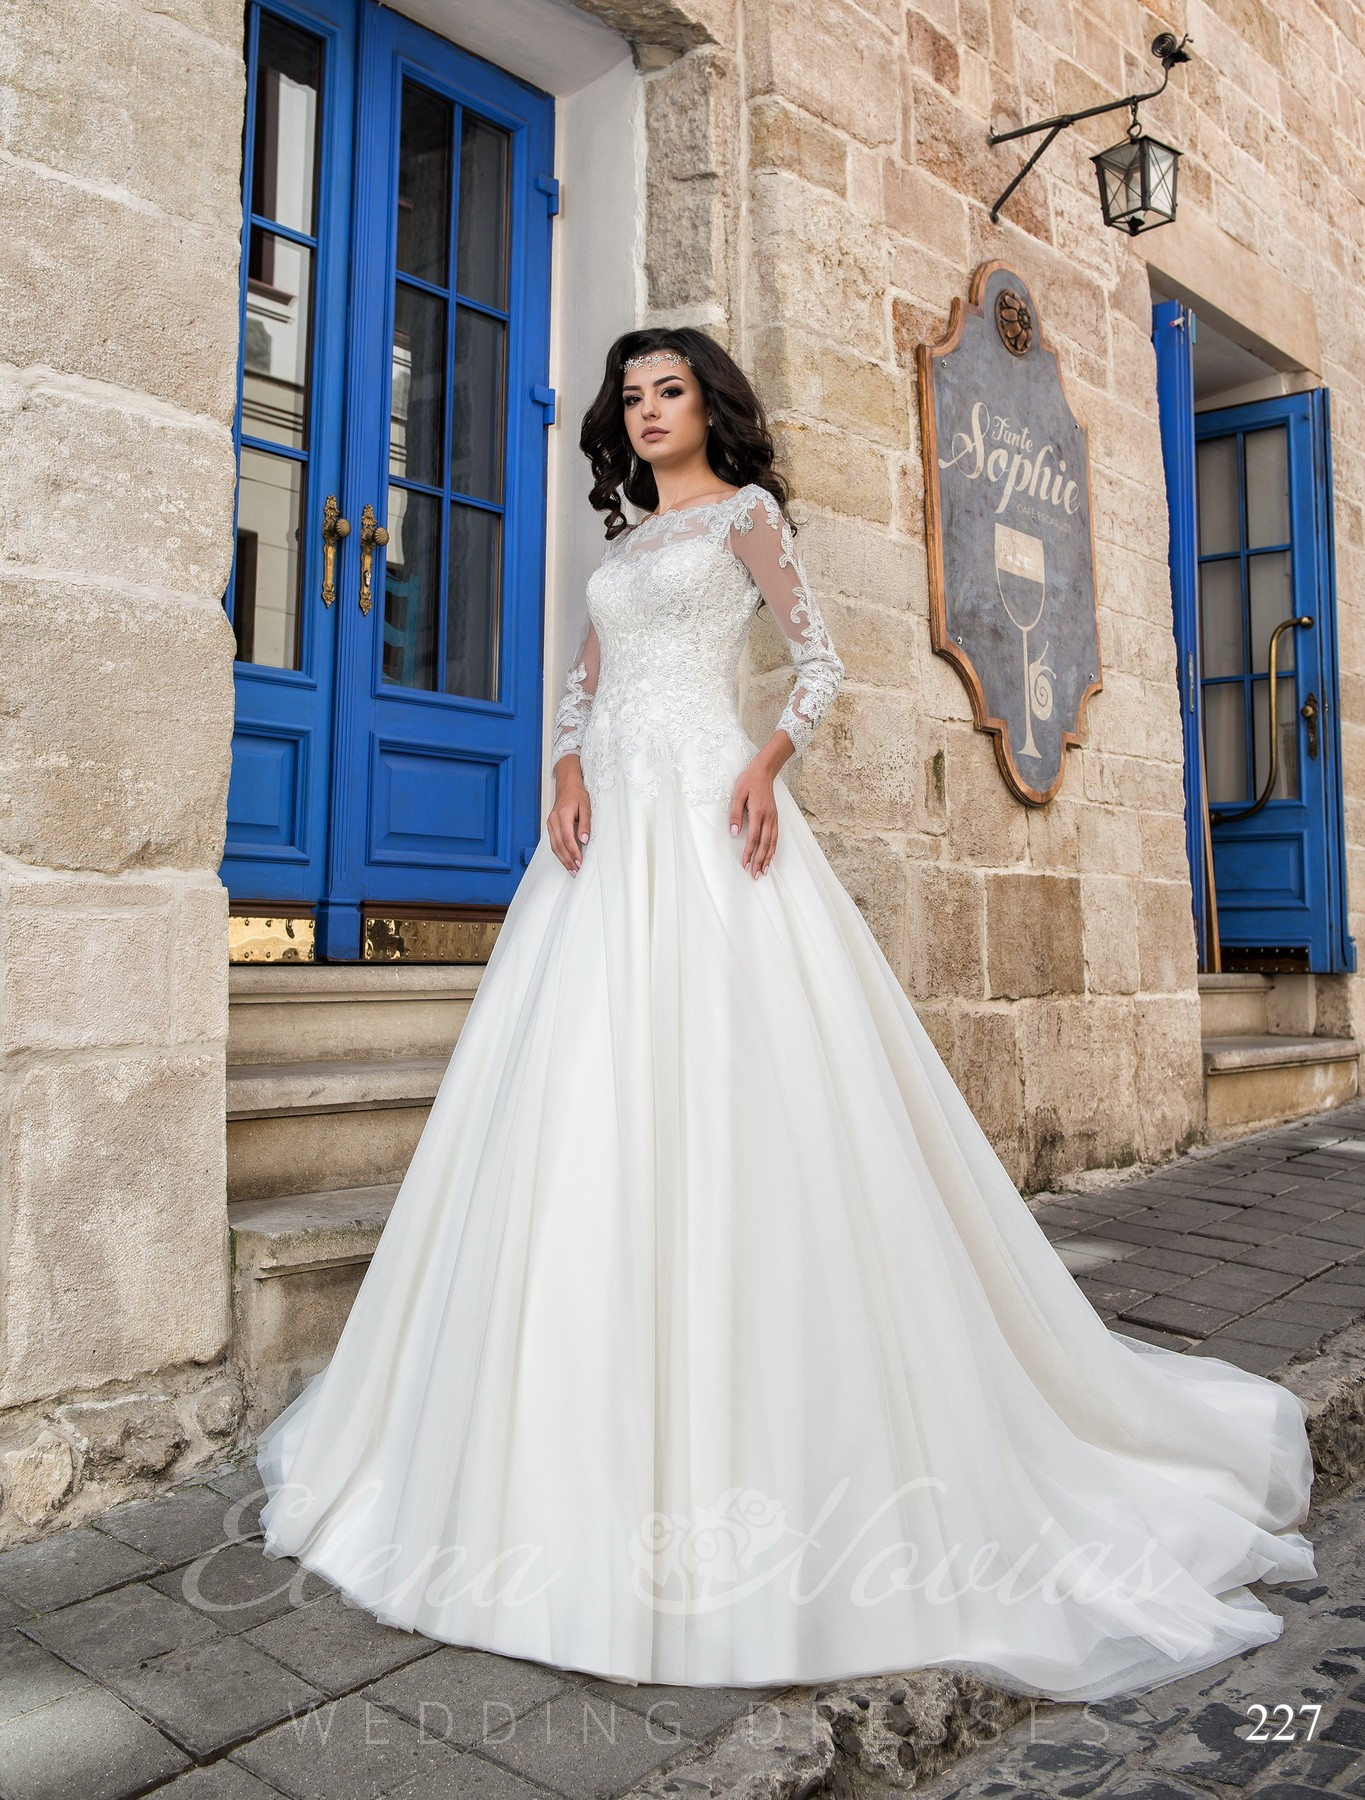 Wedding dress with a false decolette model 227